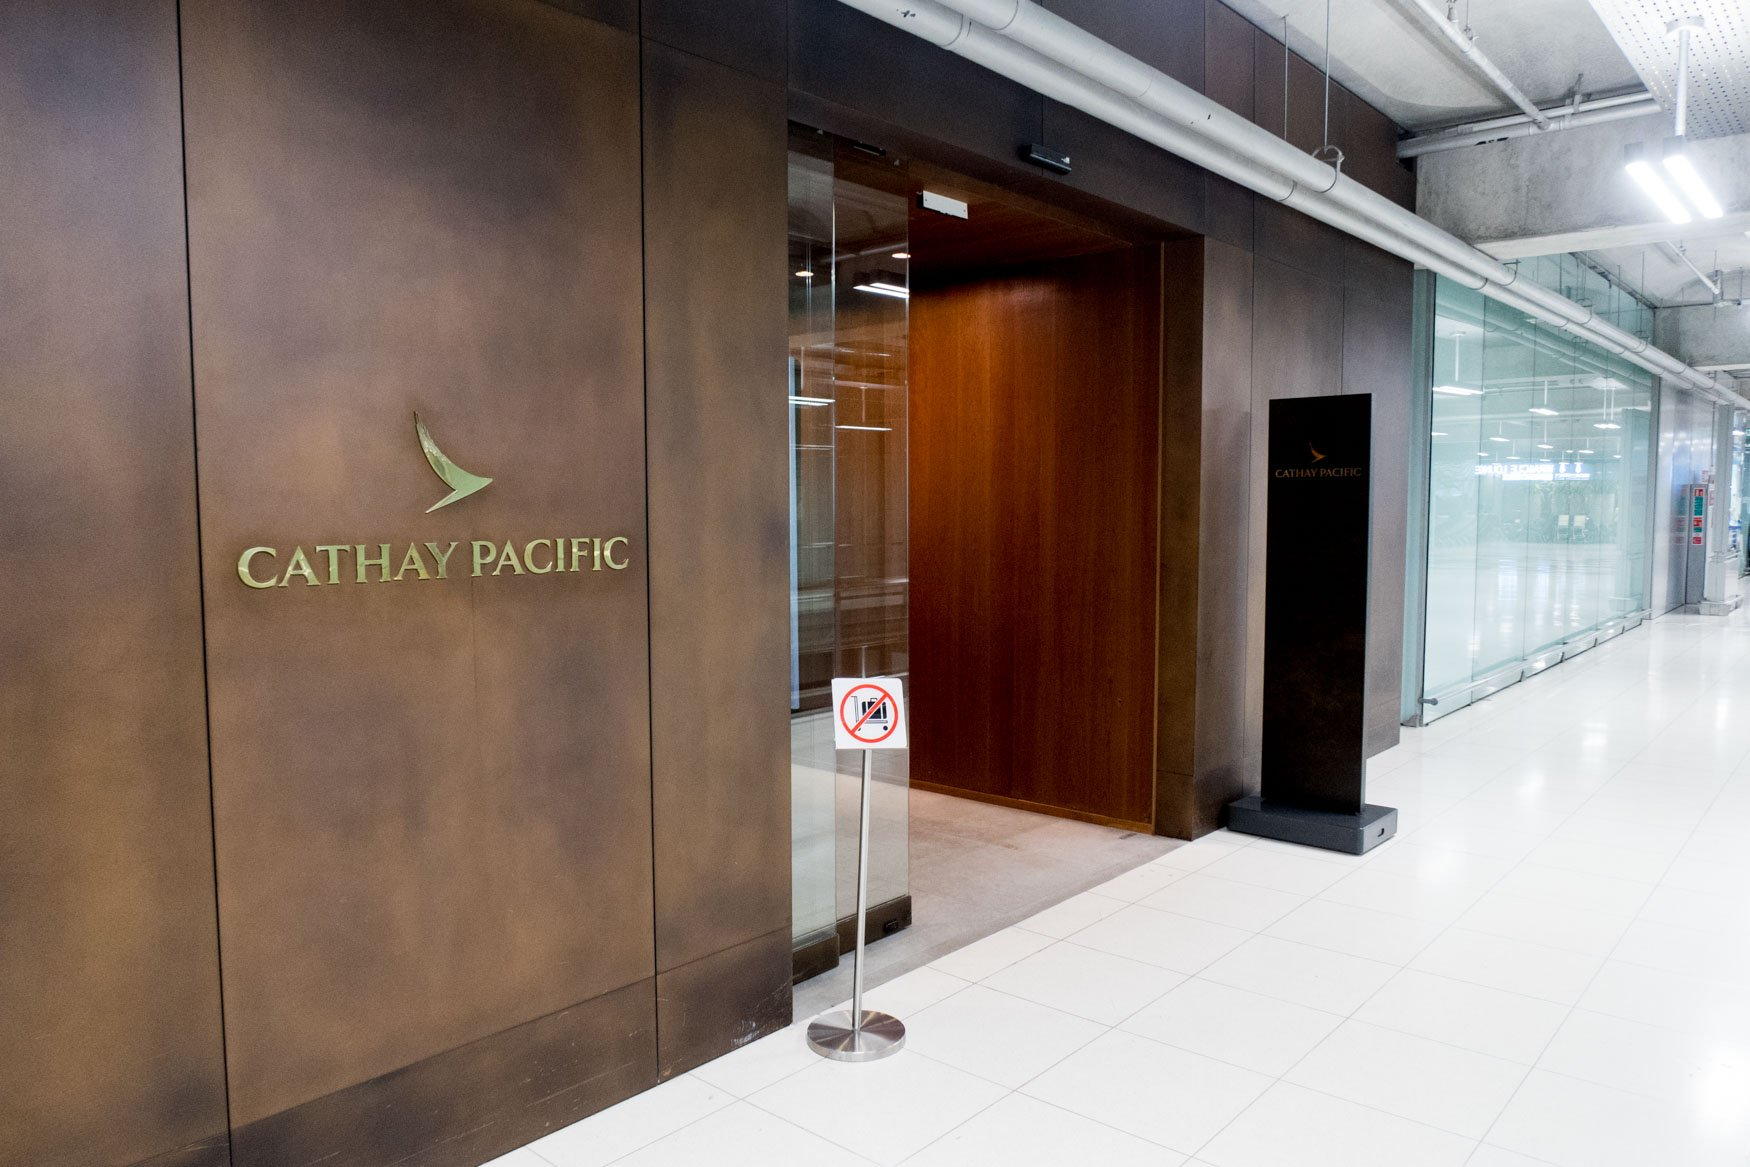 Cathay Pacific First and Business Class Lounge Bangkok Suvarnabhumi Entrance